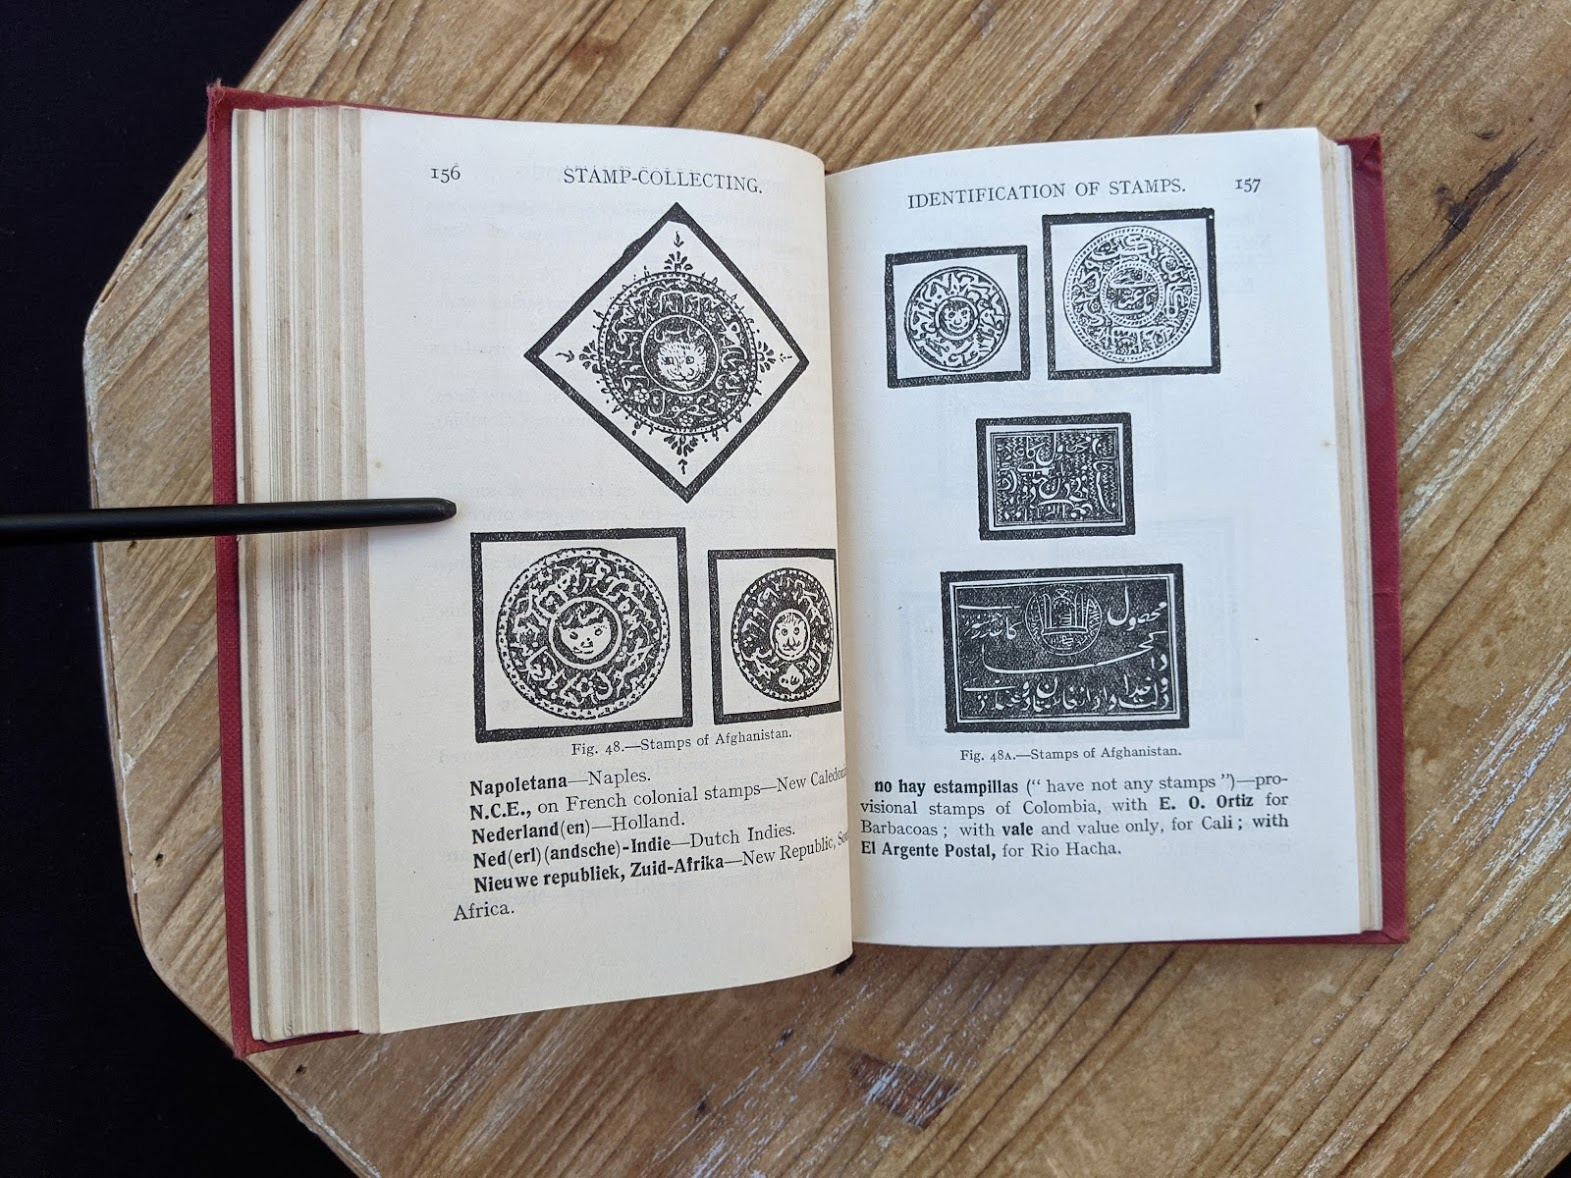 Identification of Stamps - Stamp Collecting - A Guide for Beginners by A. B. Creeke - Circa 1910